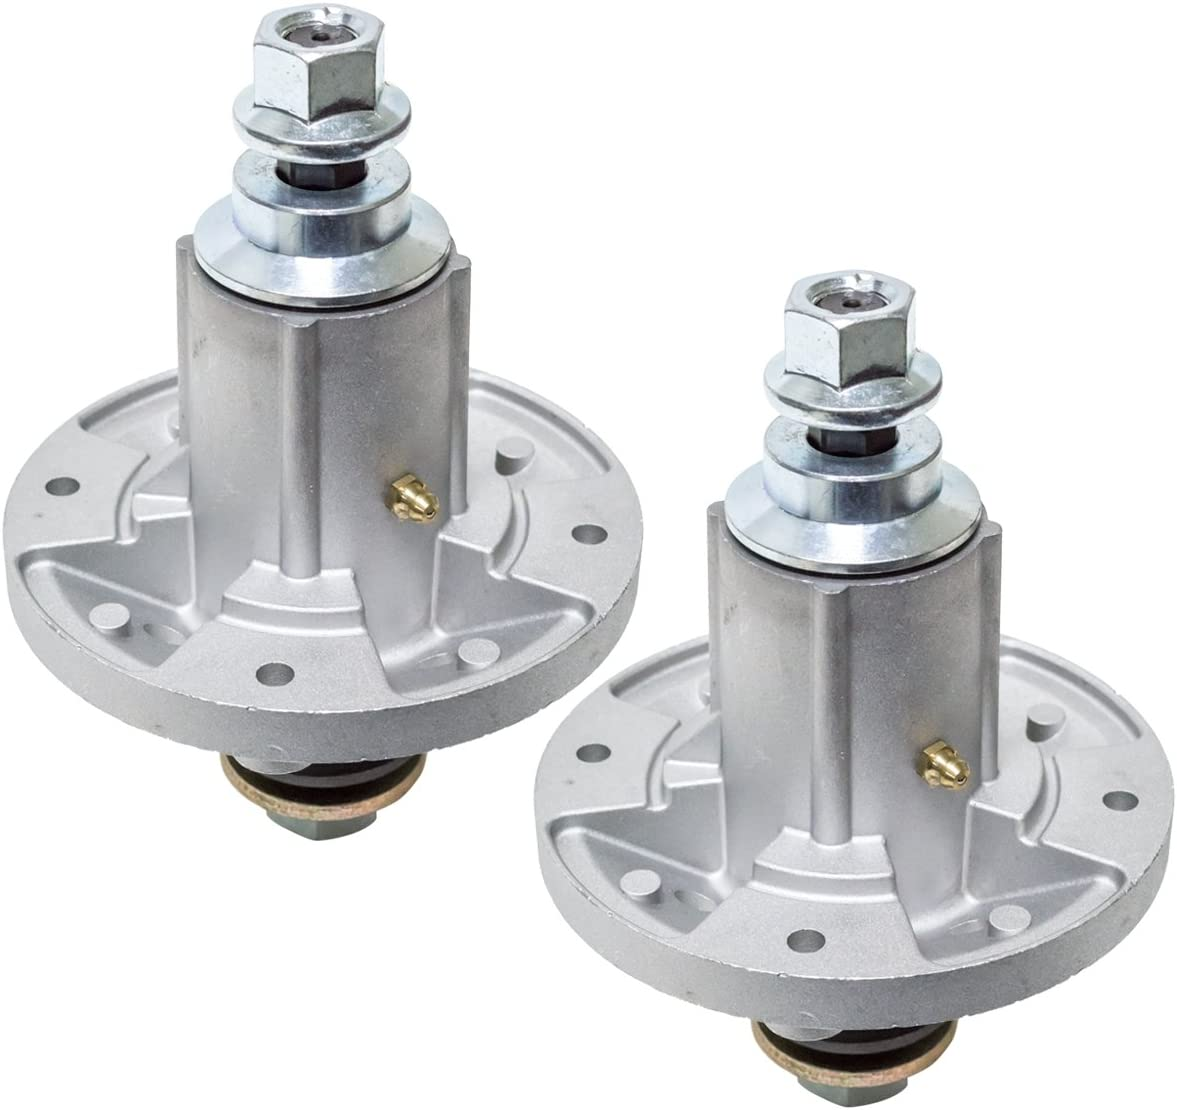 EPR Detroit Mall 2 Spindle Assemblies Replacement GY for GY21098 Deere Max 68% OFF John